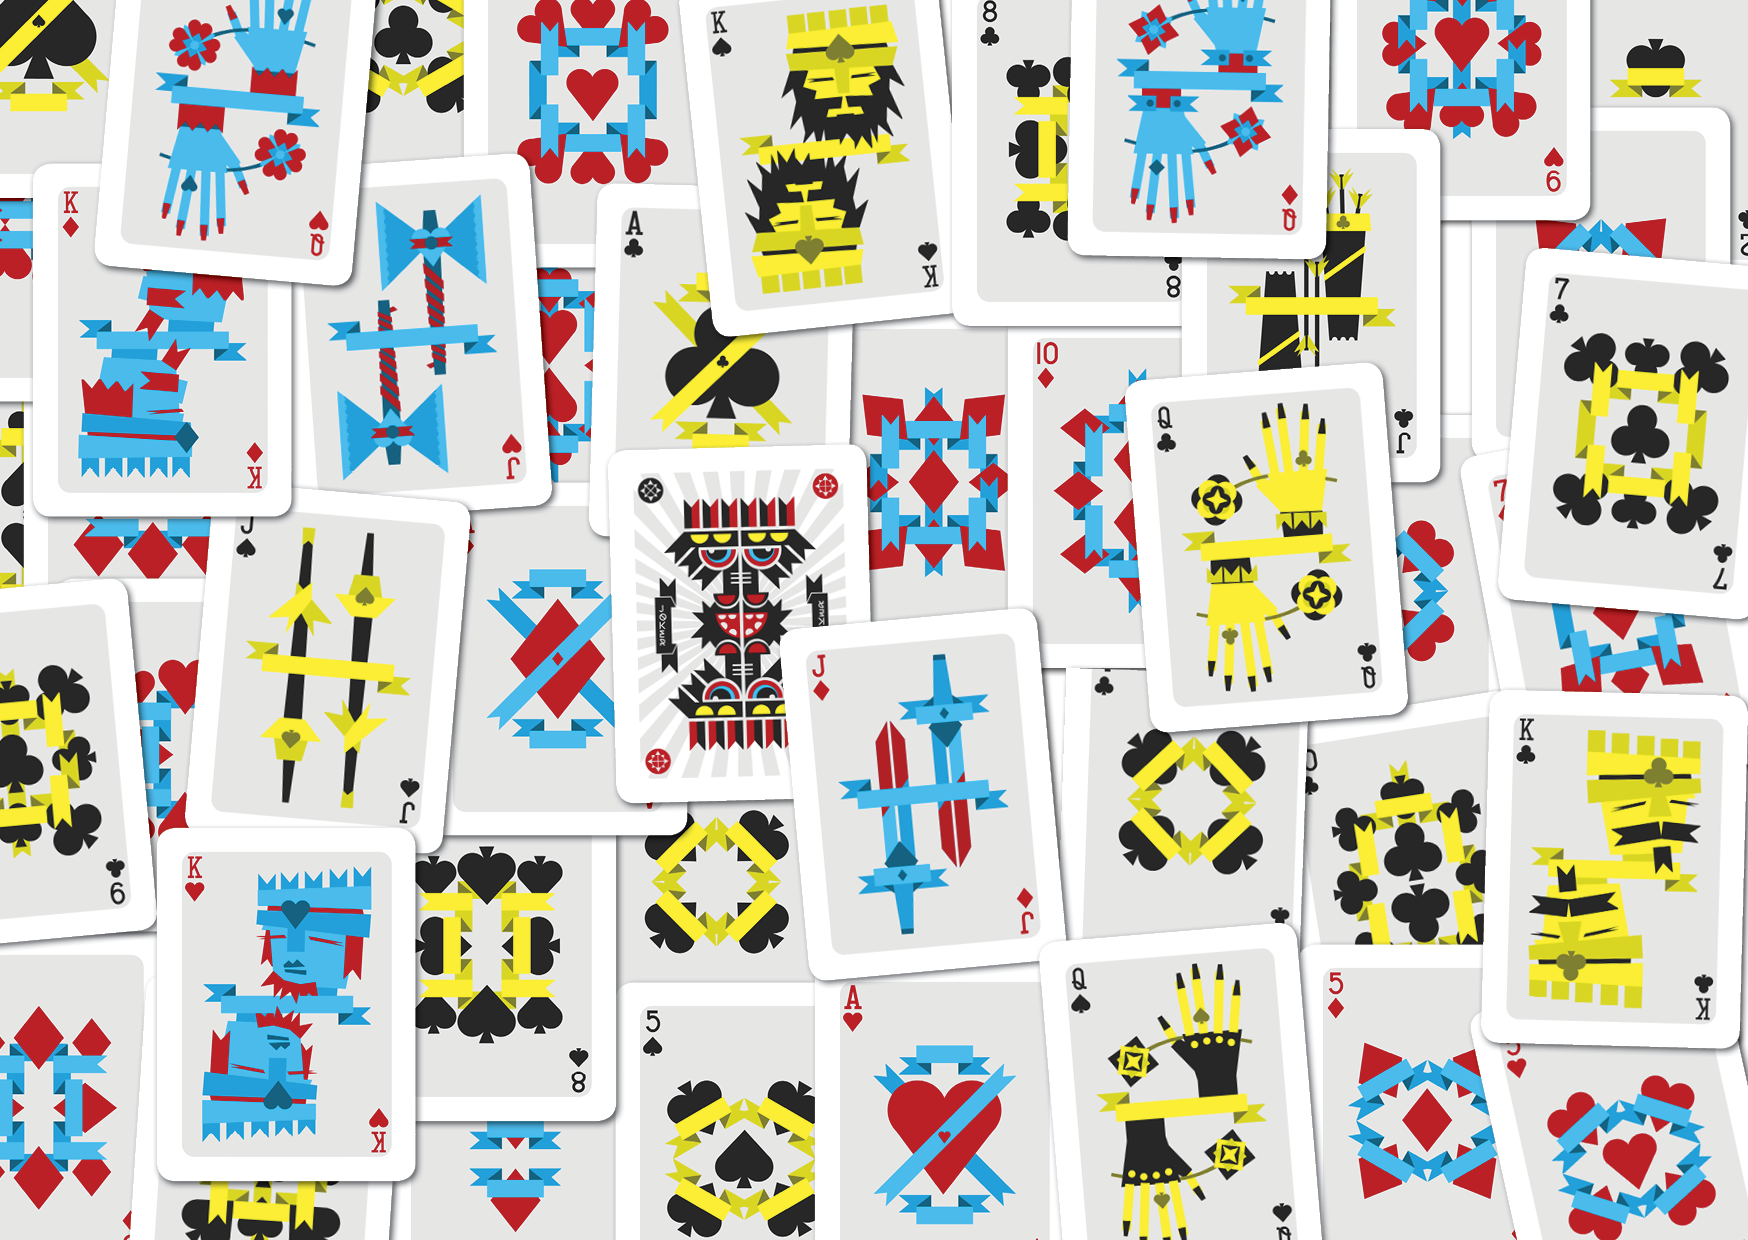 cards playing cards carte da gioco poker ramino illustration vector minimal graphic design